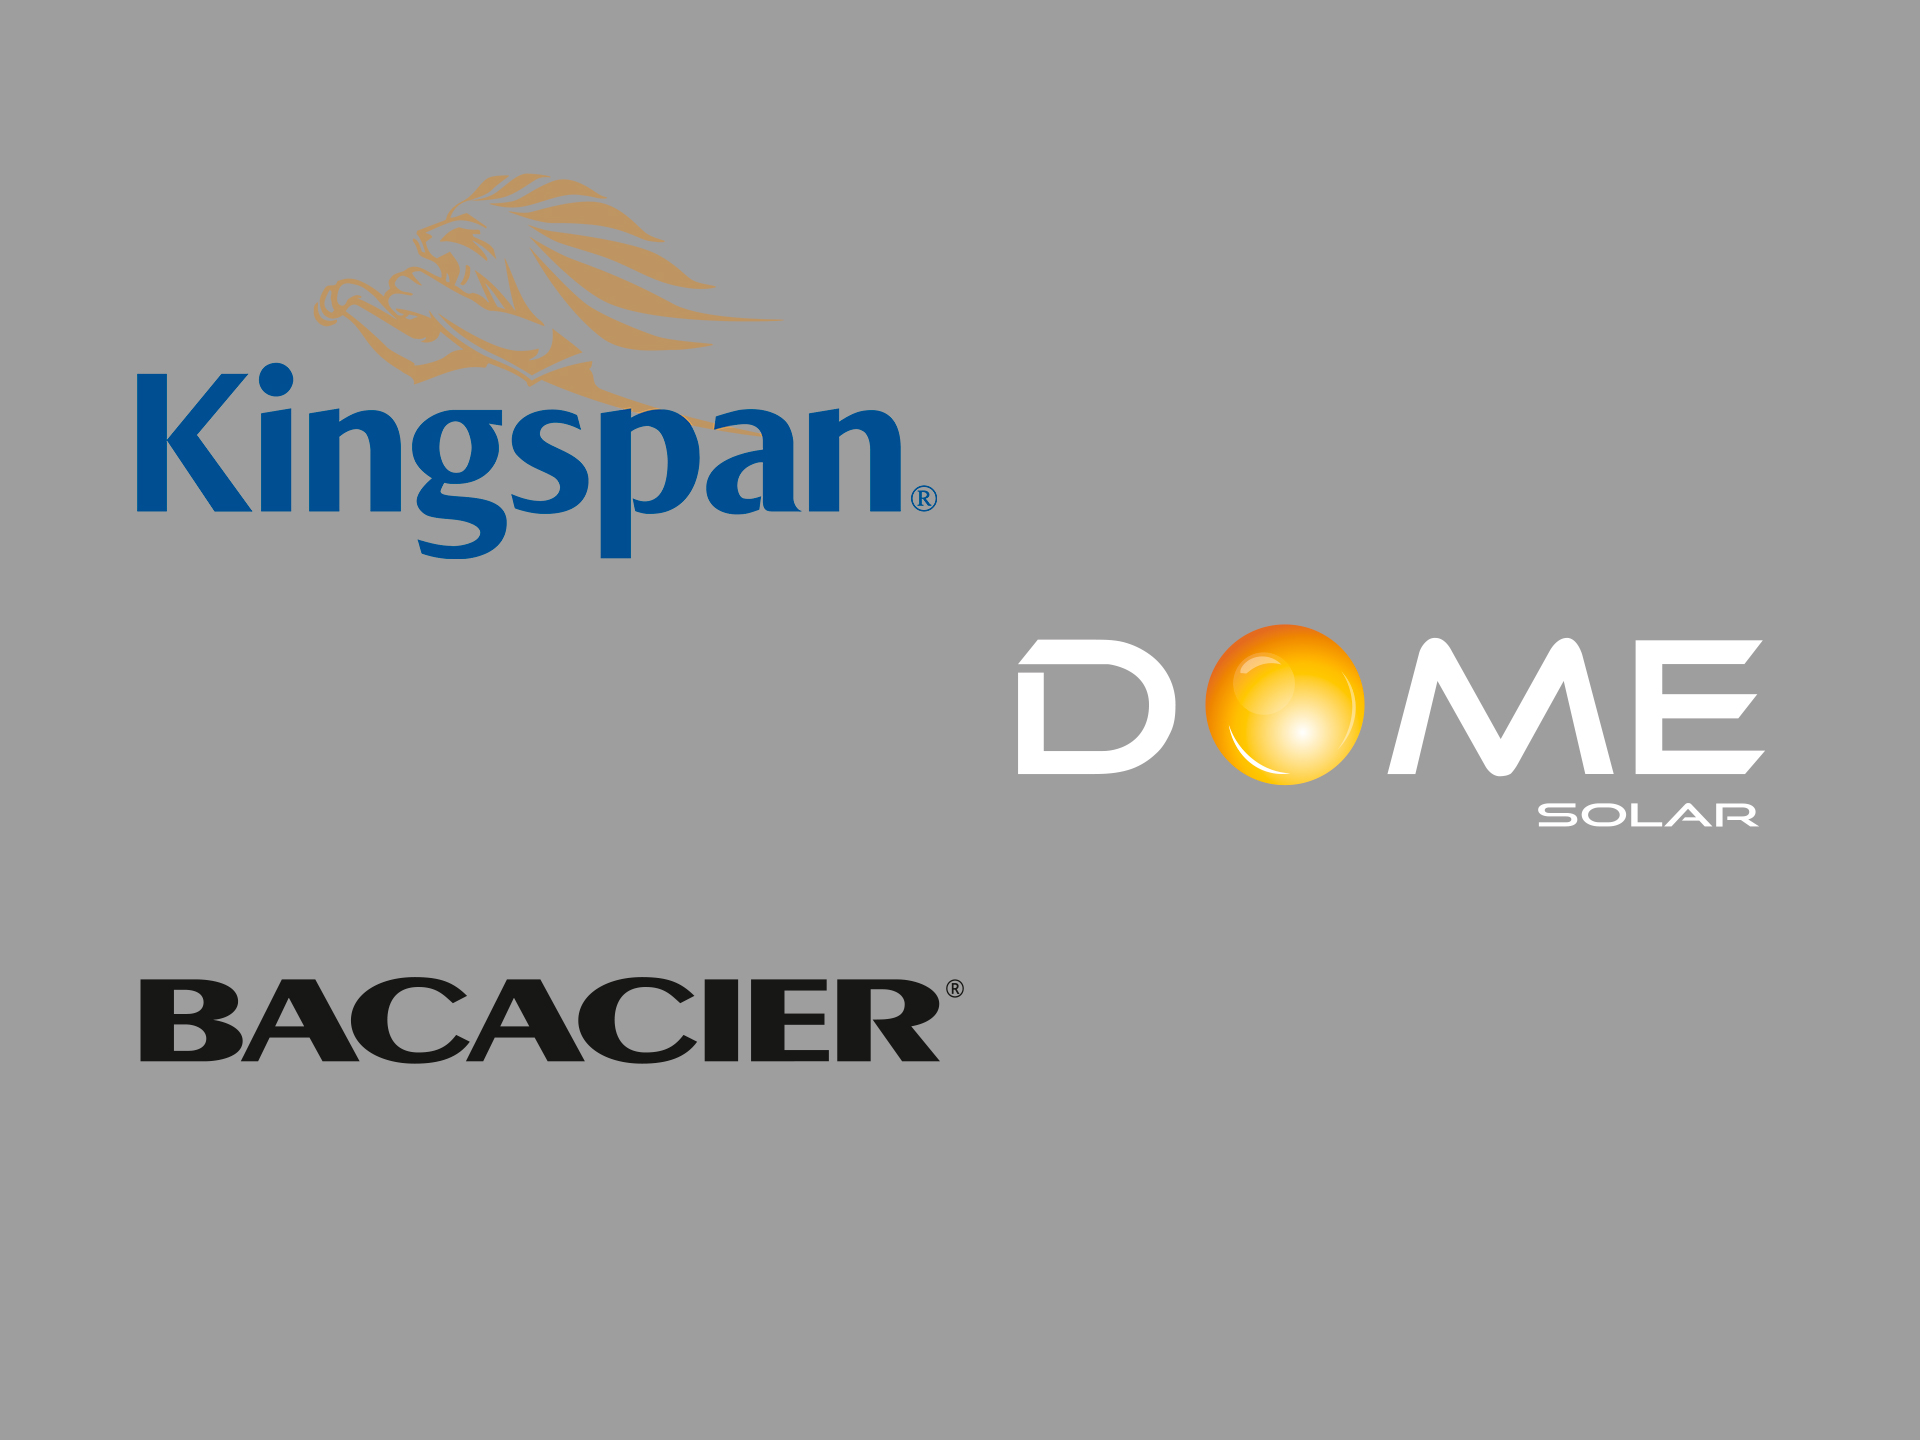 Dome Solar becomes a 100% subsidiary of the Kingspan – Bacacier group